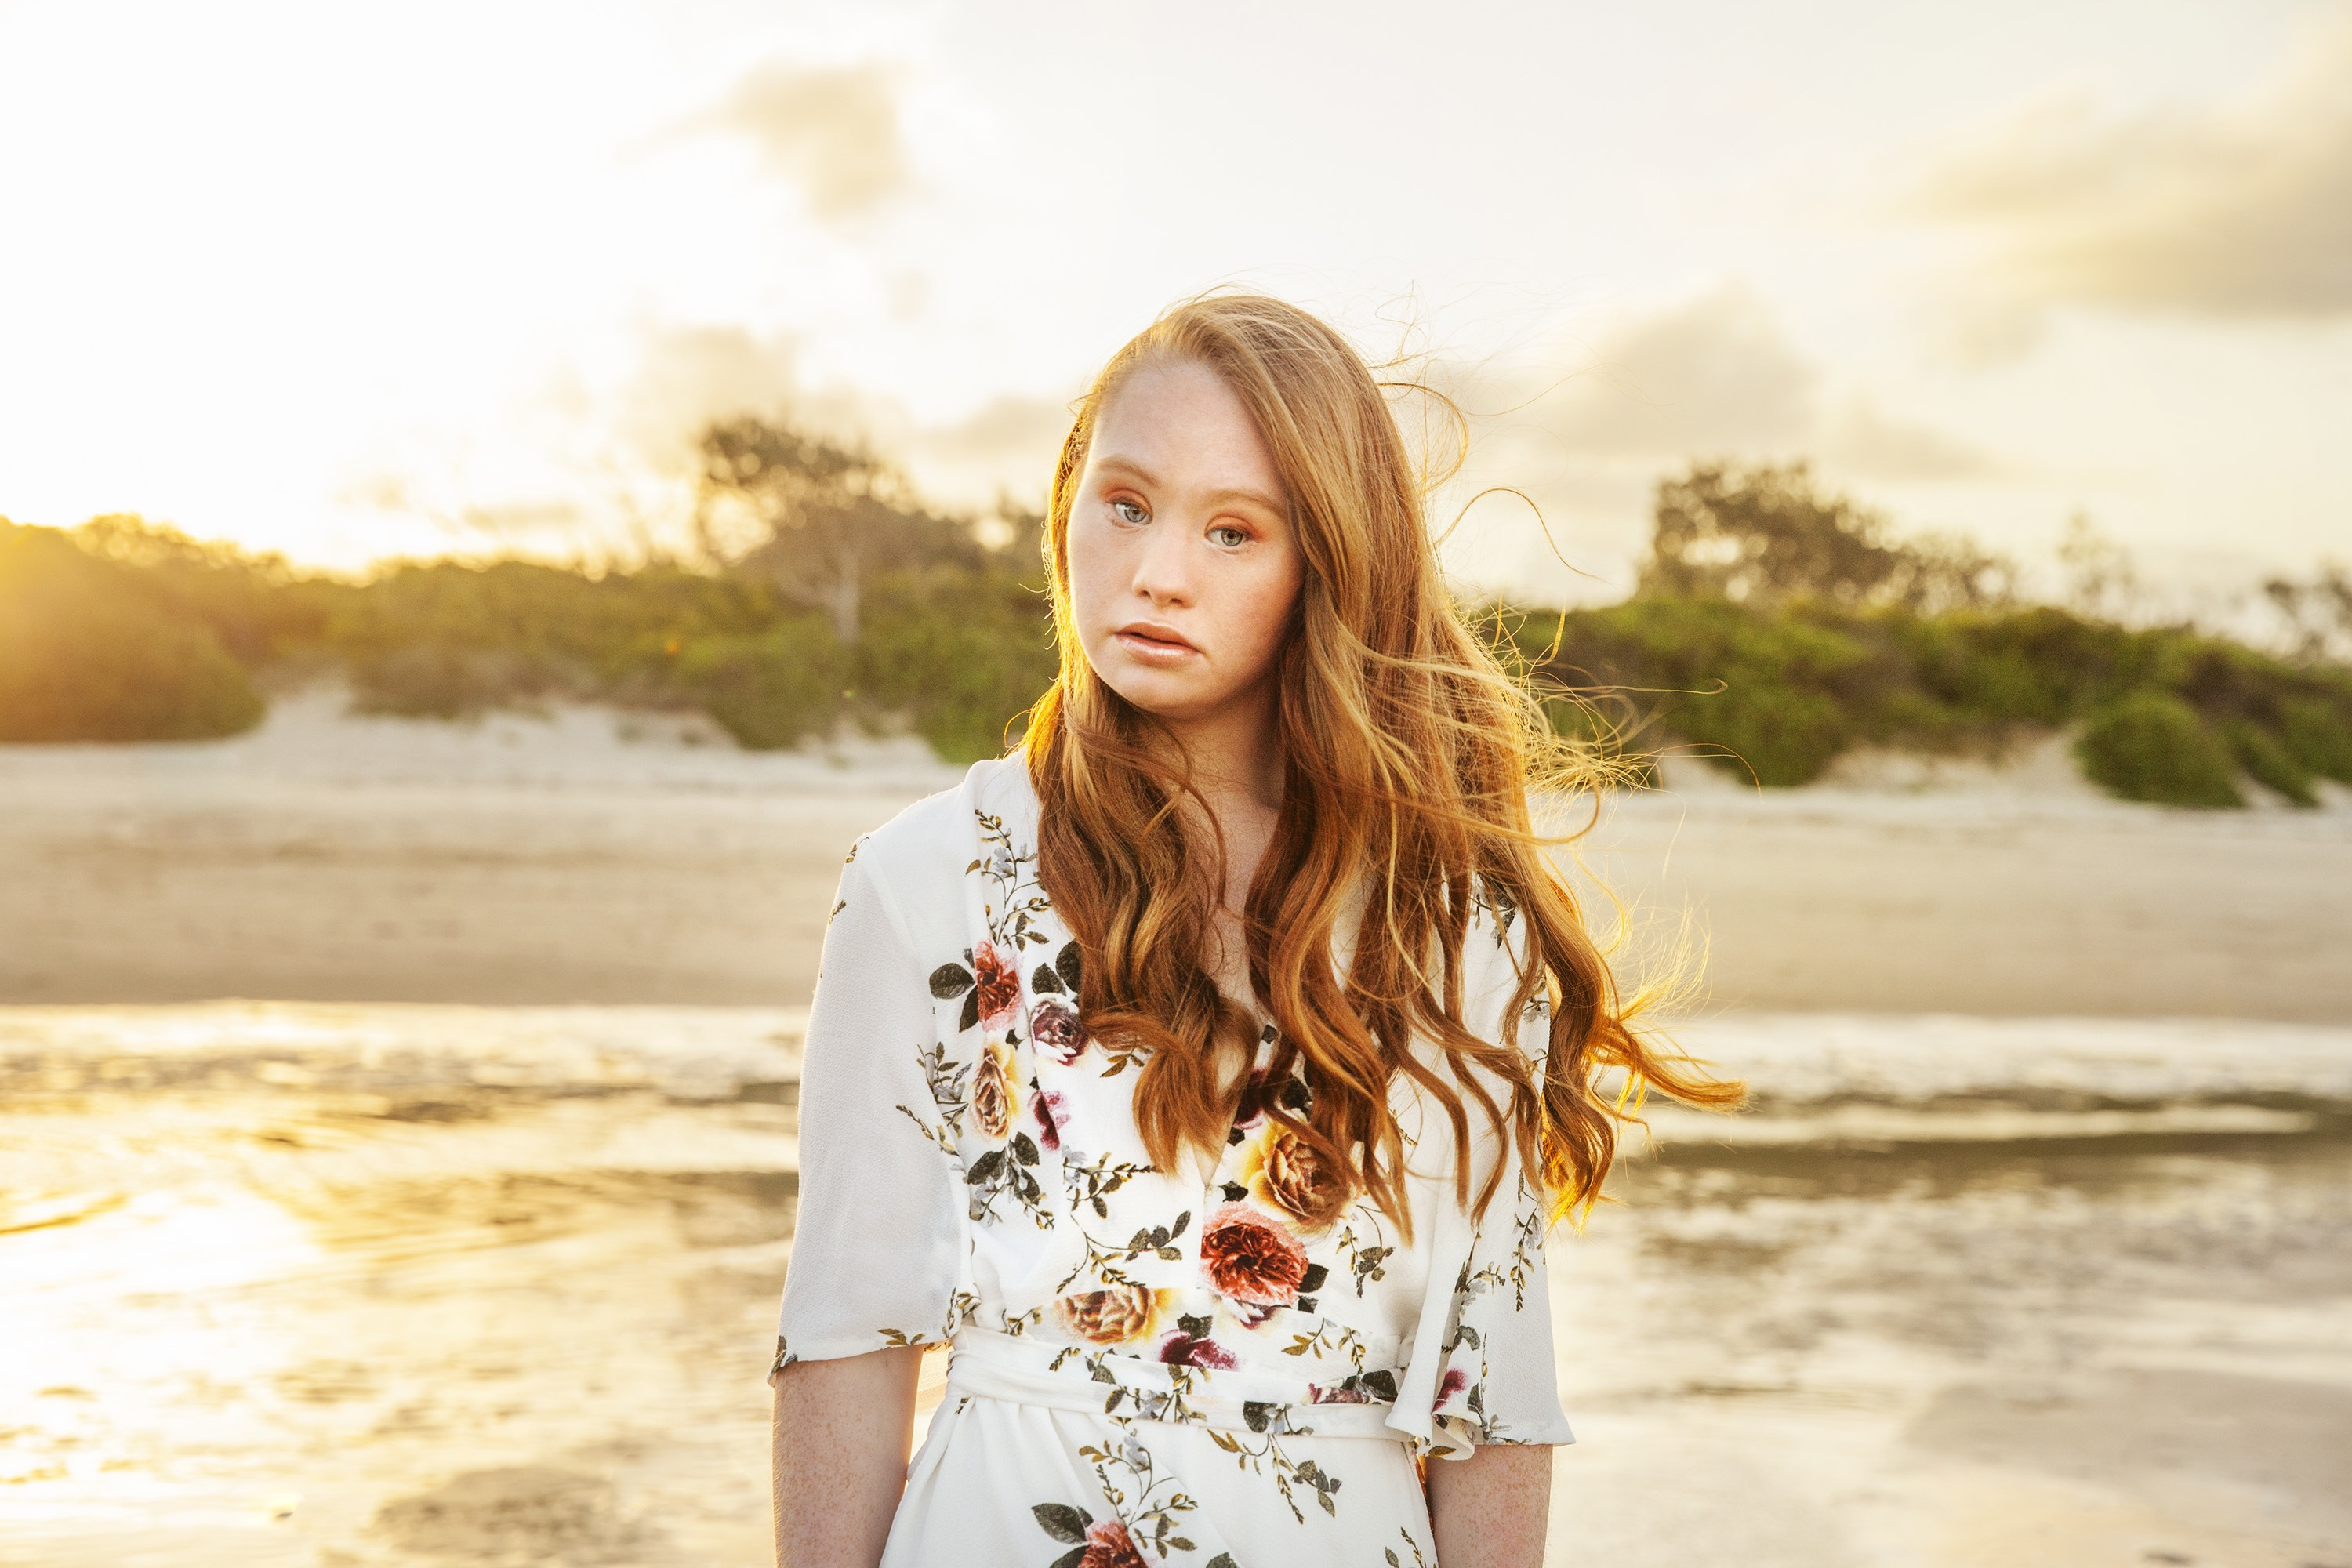 Madeline Stuart A Model With Down Syndrome Is Upending The Catwalk